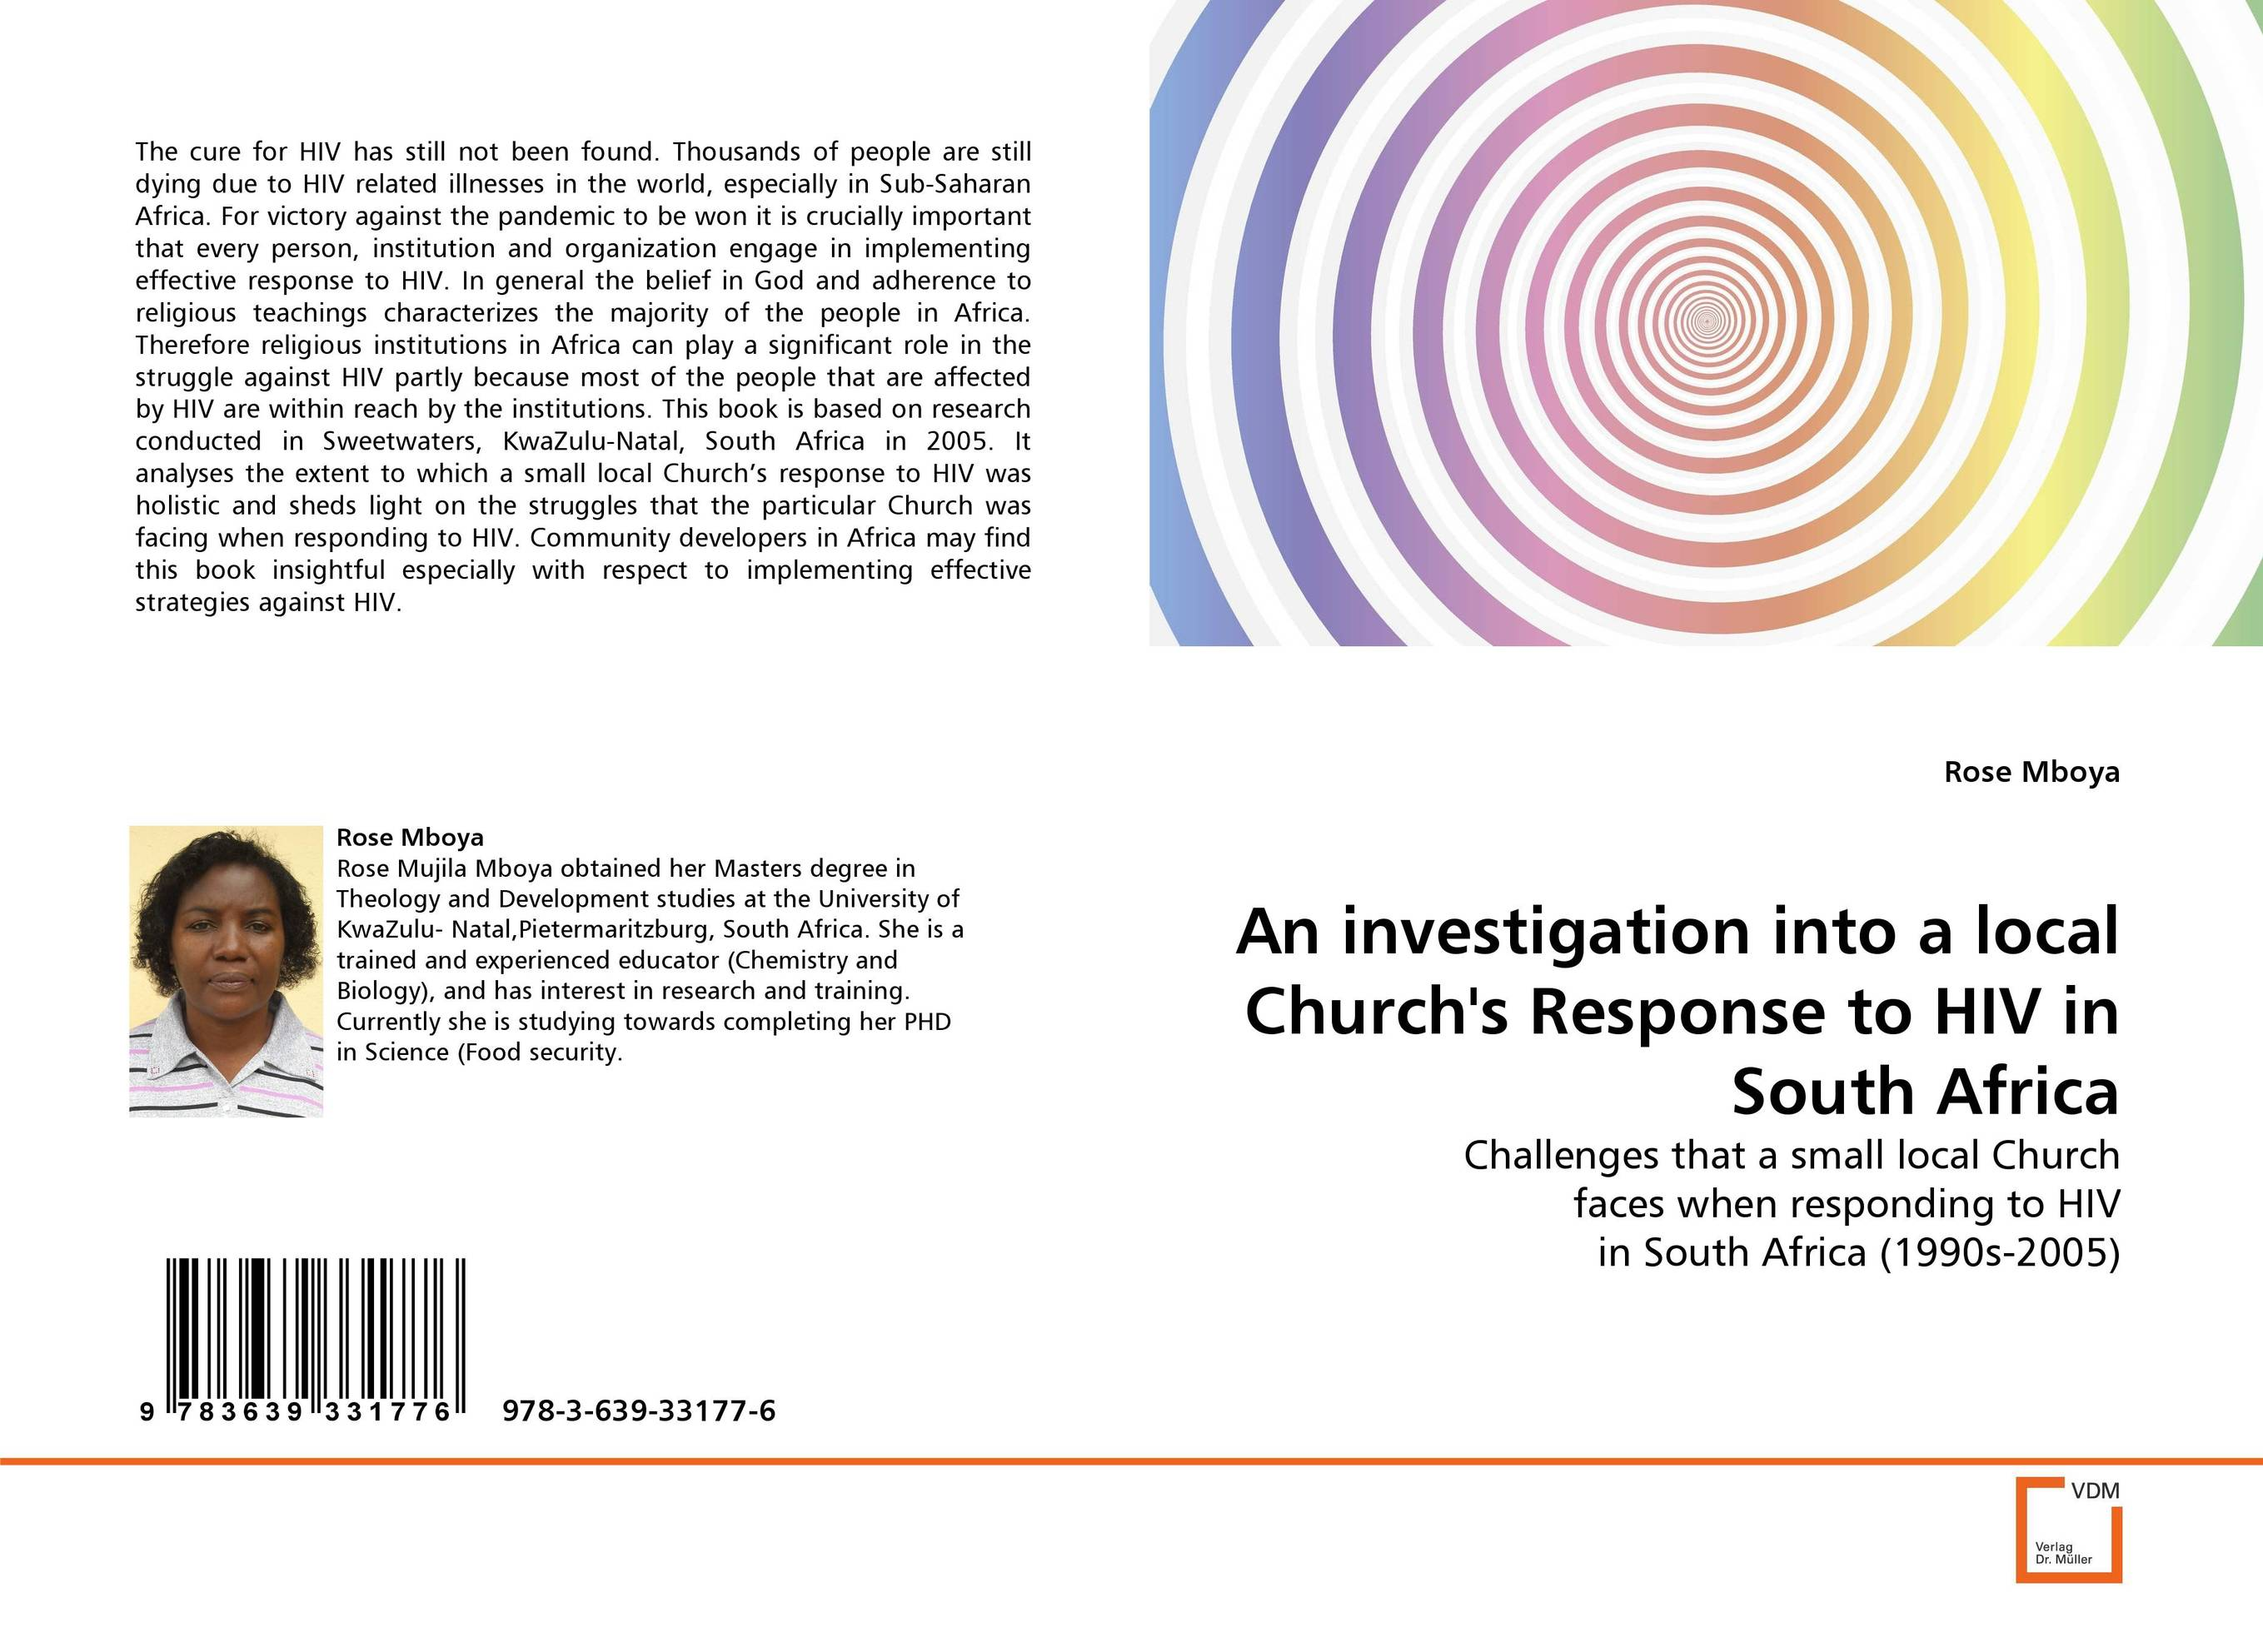 An investigation into a local Church''s Response to HIV in South Africa термокружка emsa travel mug 360 мл 513351